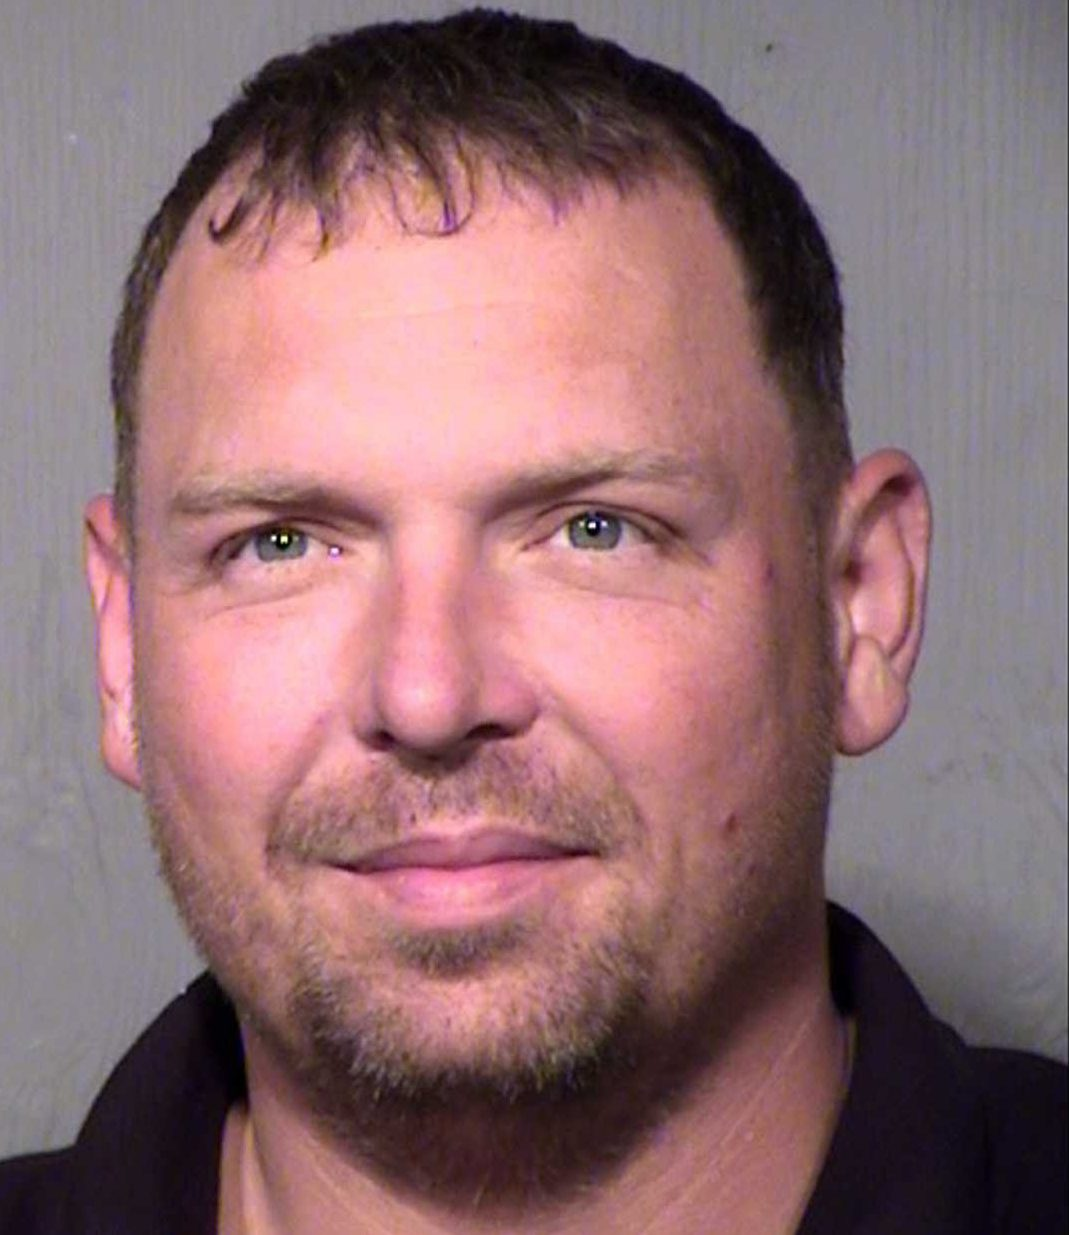 Michael Navage A Mesa man was arrested Wednesday on suspicion of bestiality involving a cat, according to Maricopa County court records.